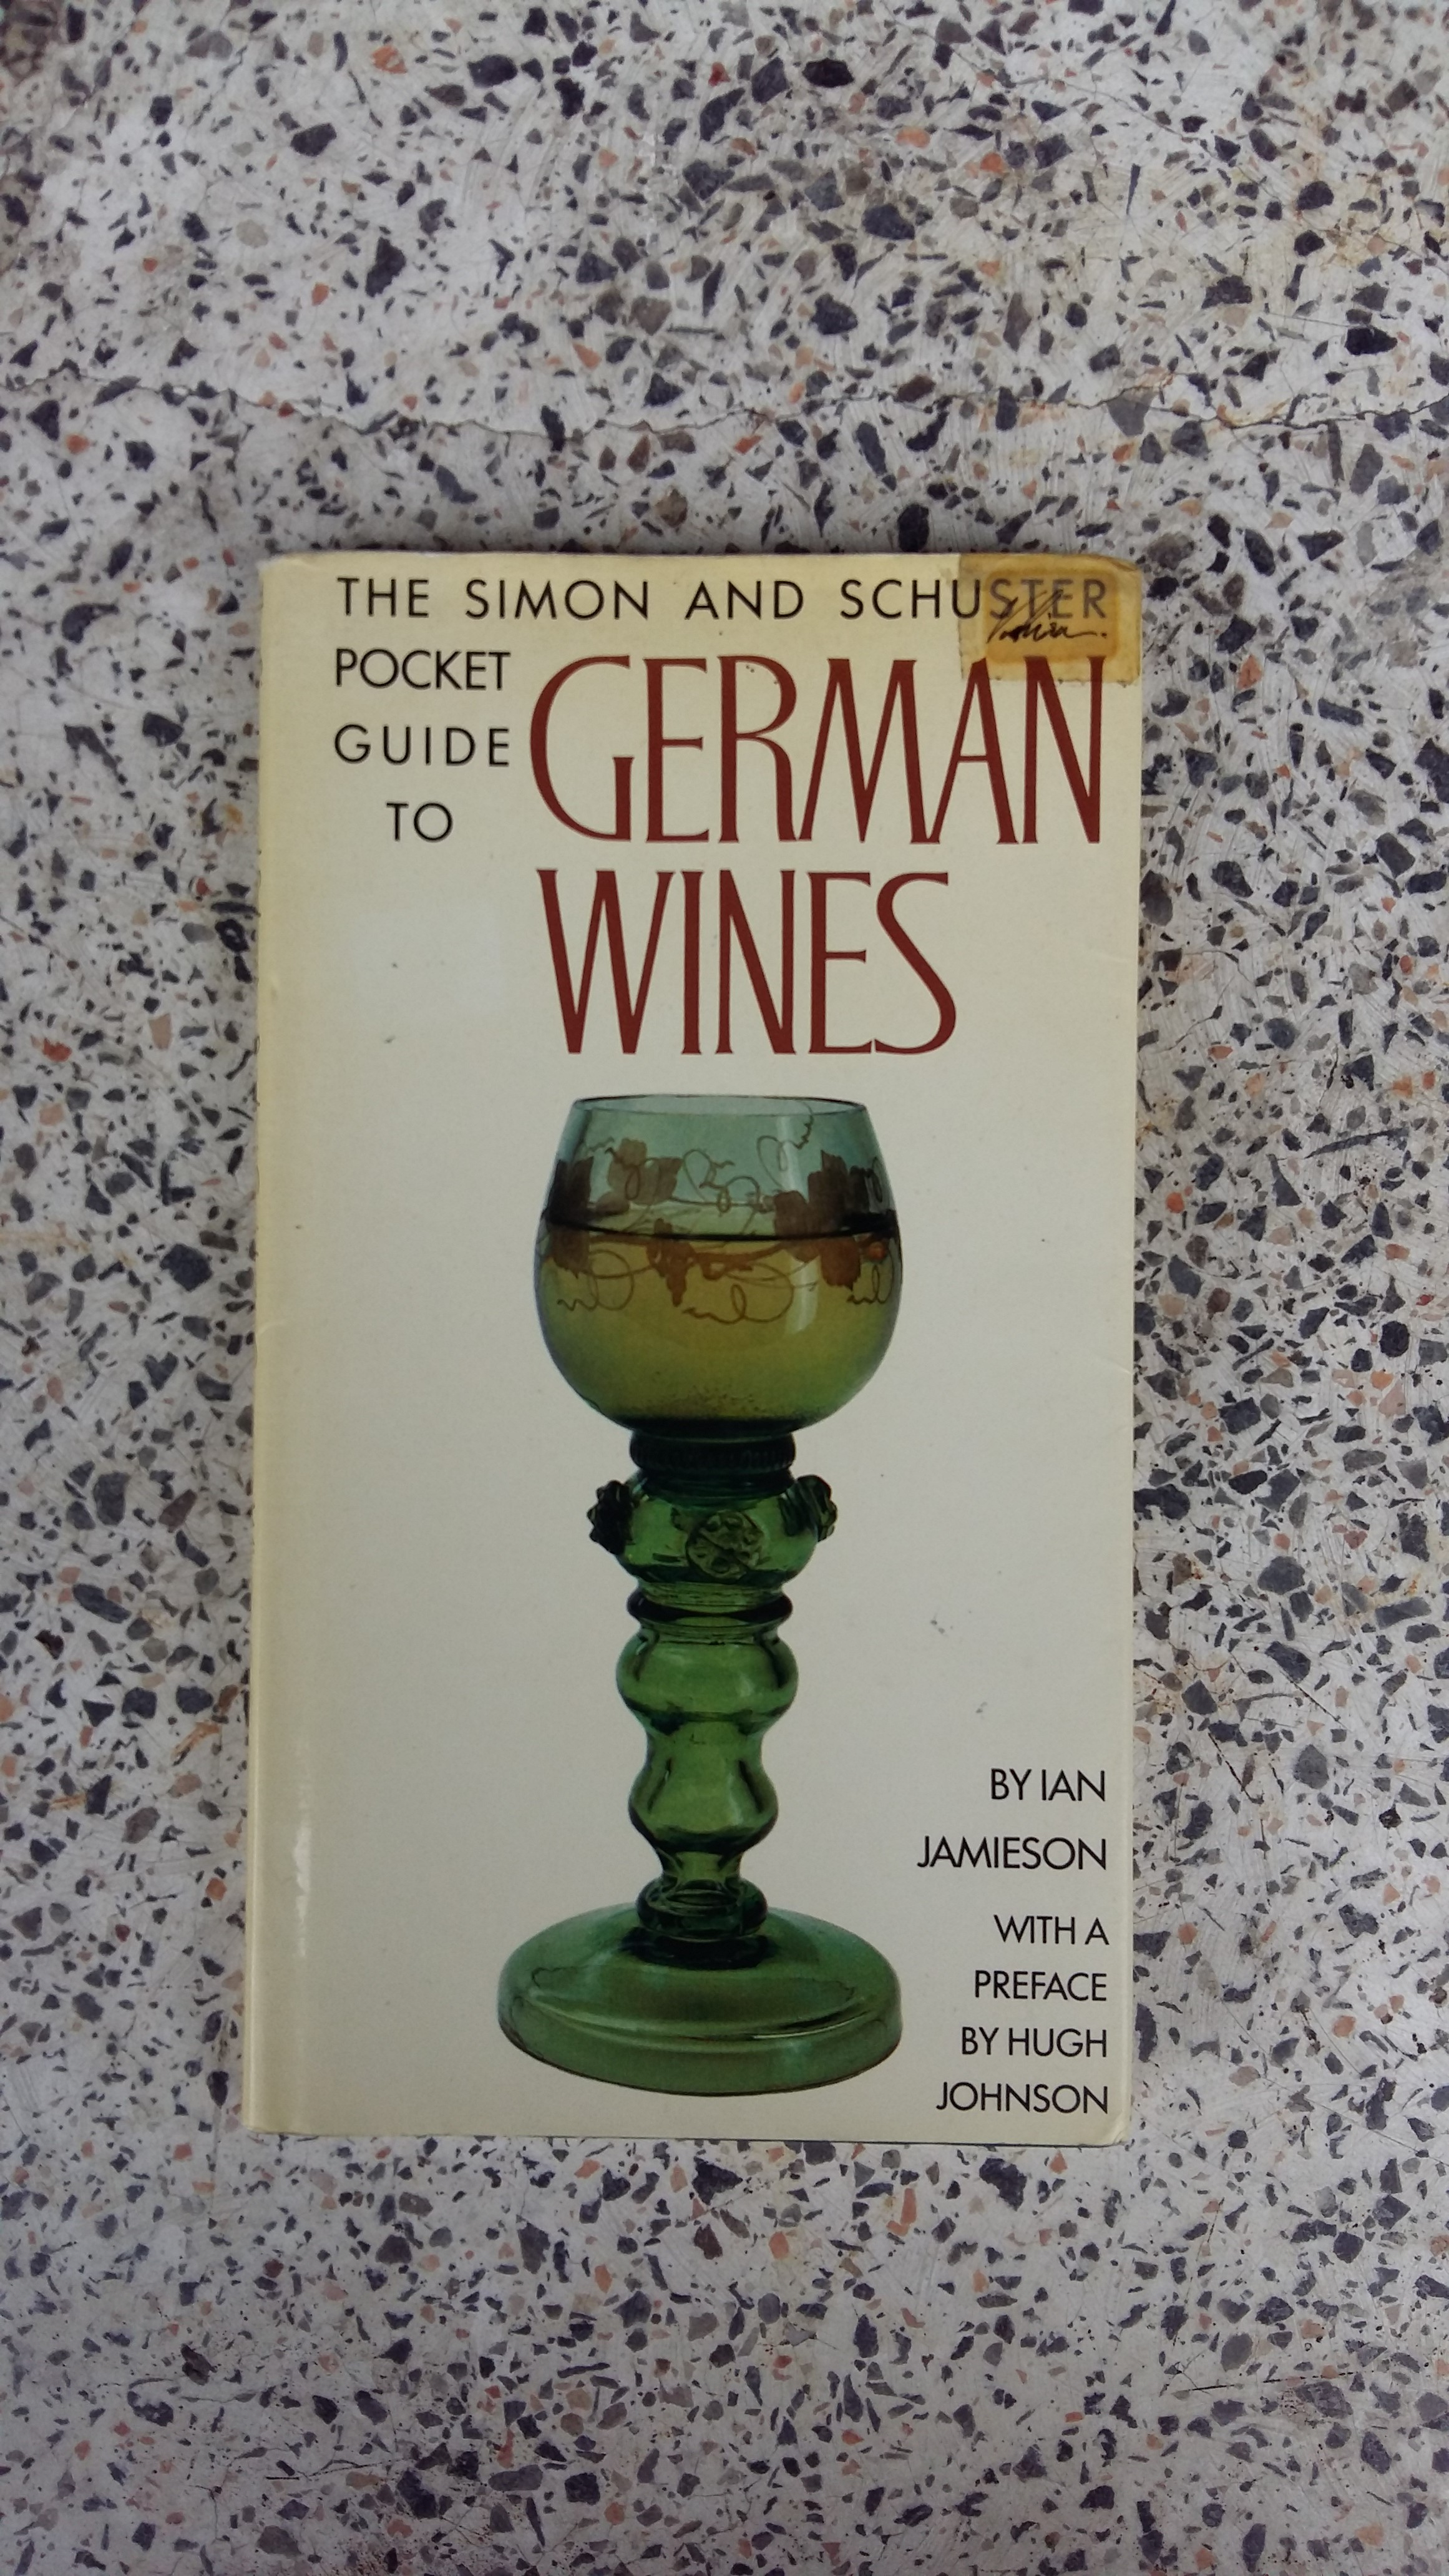 The Simon and Schuster Pocket Guide to German Wines